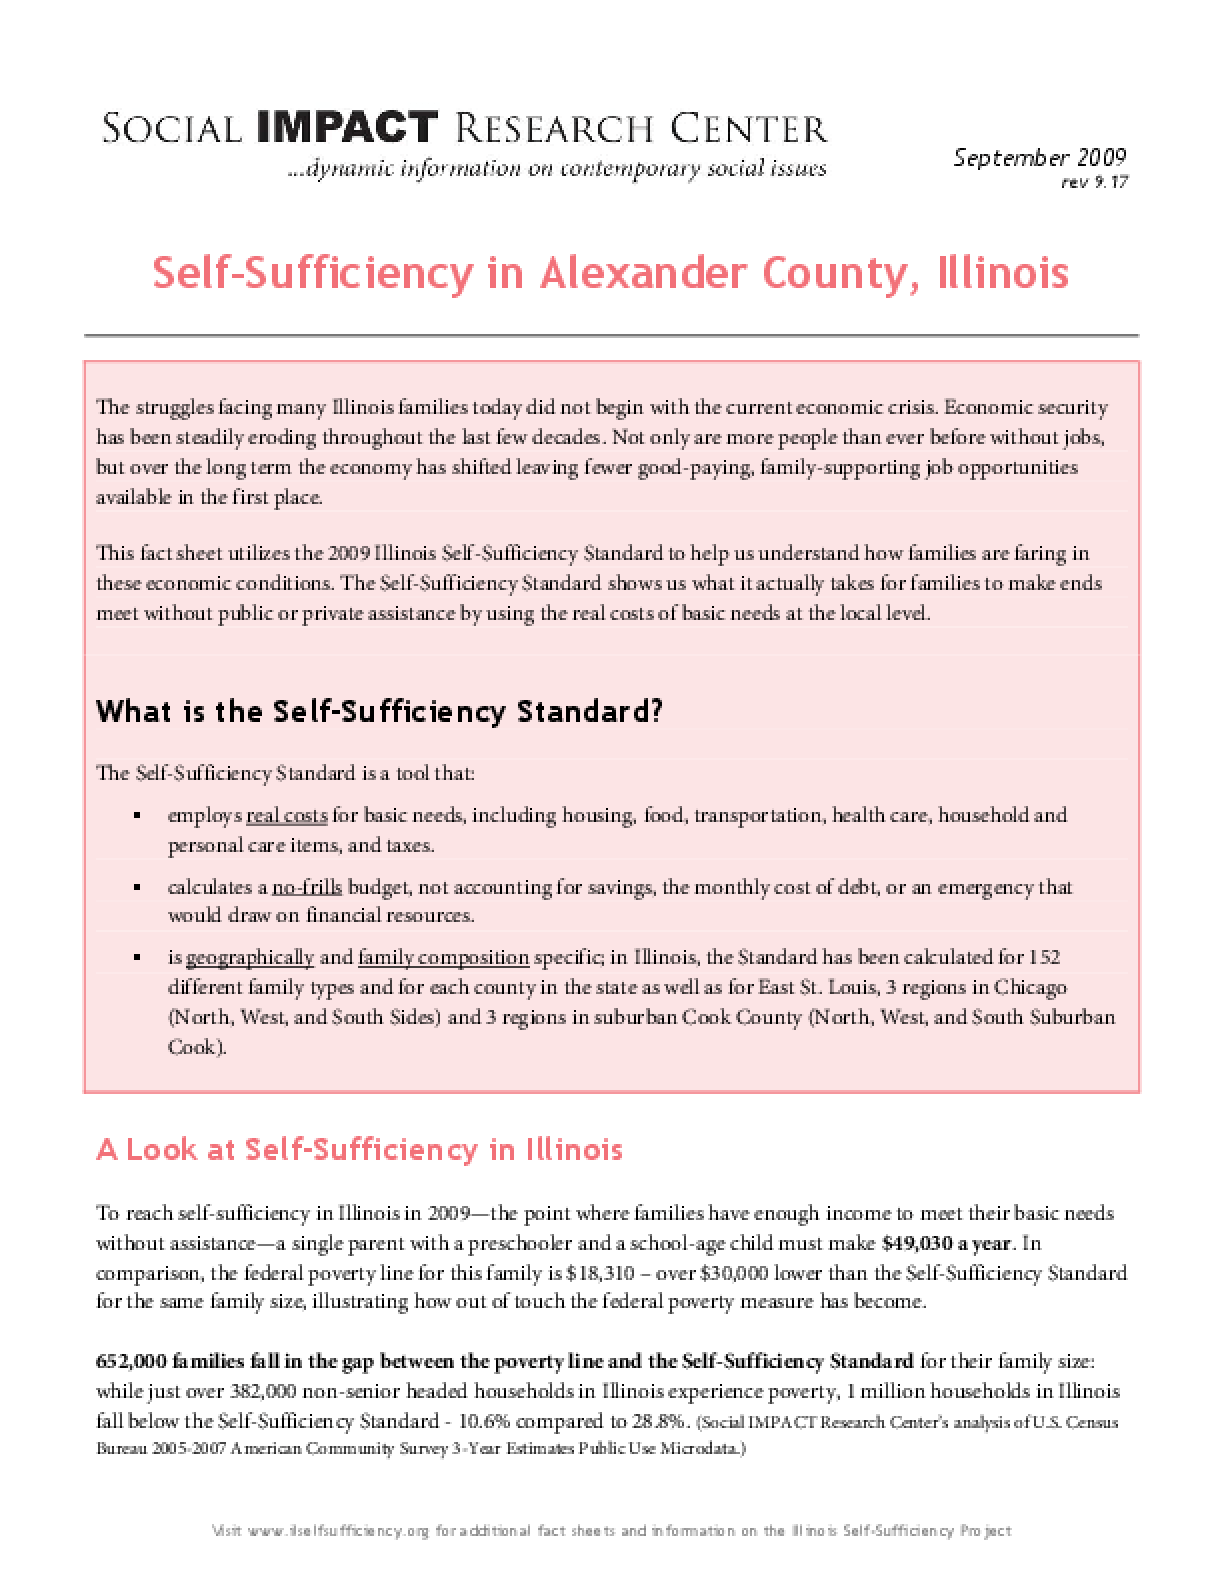 Self-Sufficiency in Alexander County, Illinois